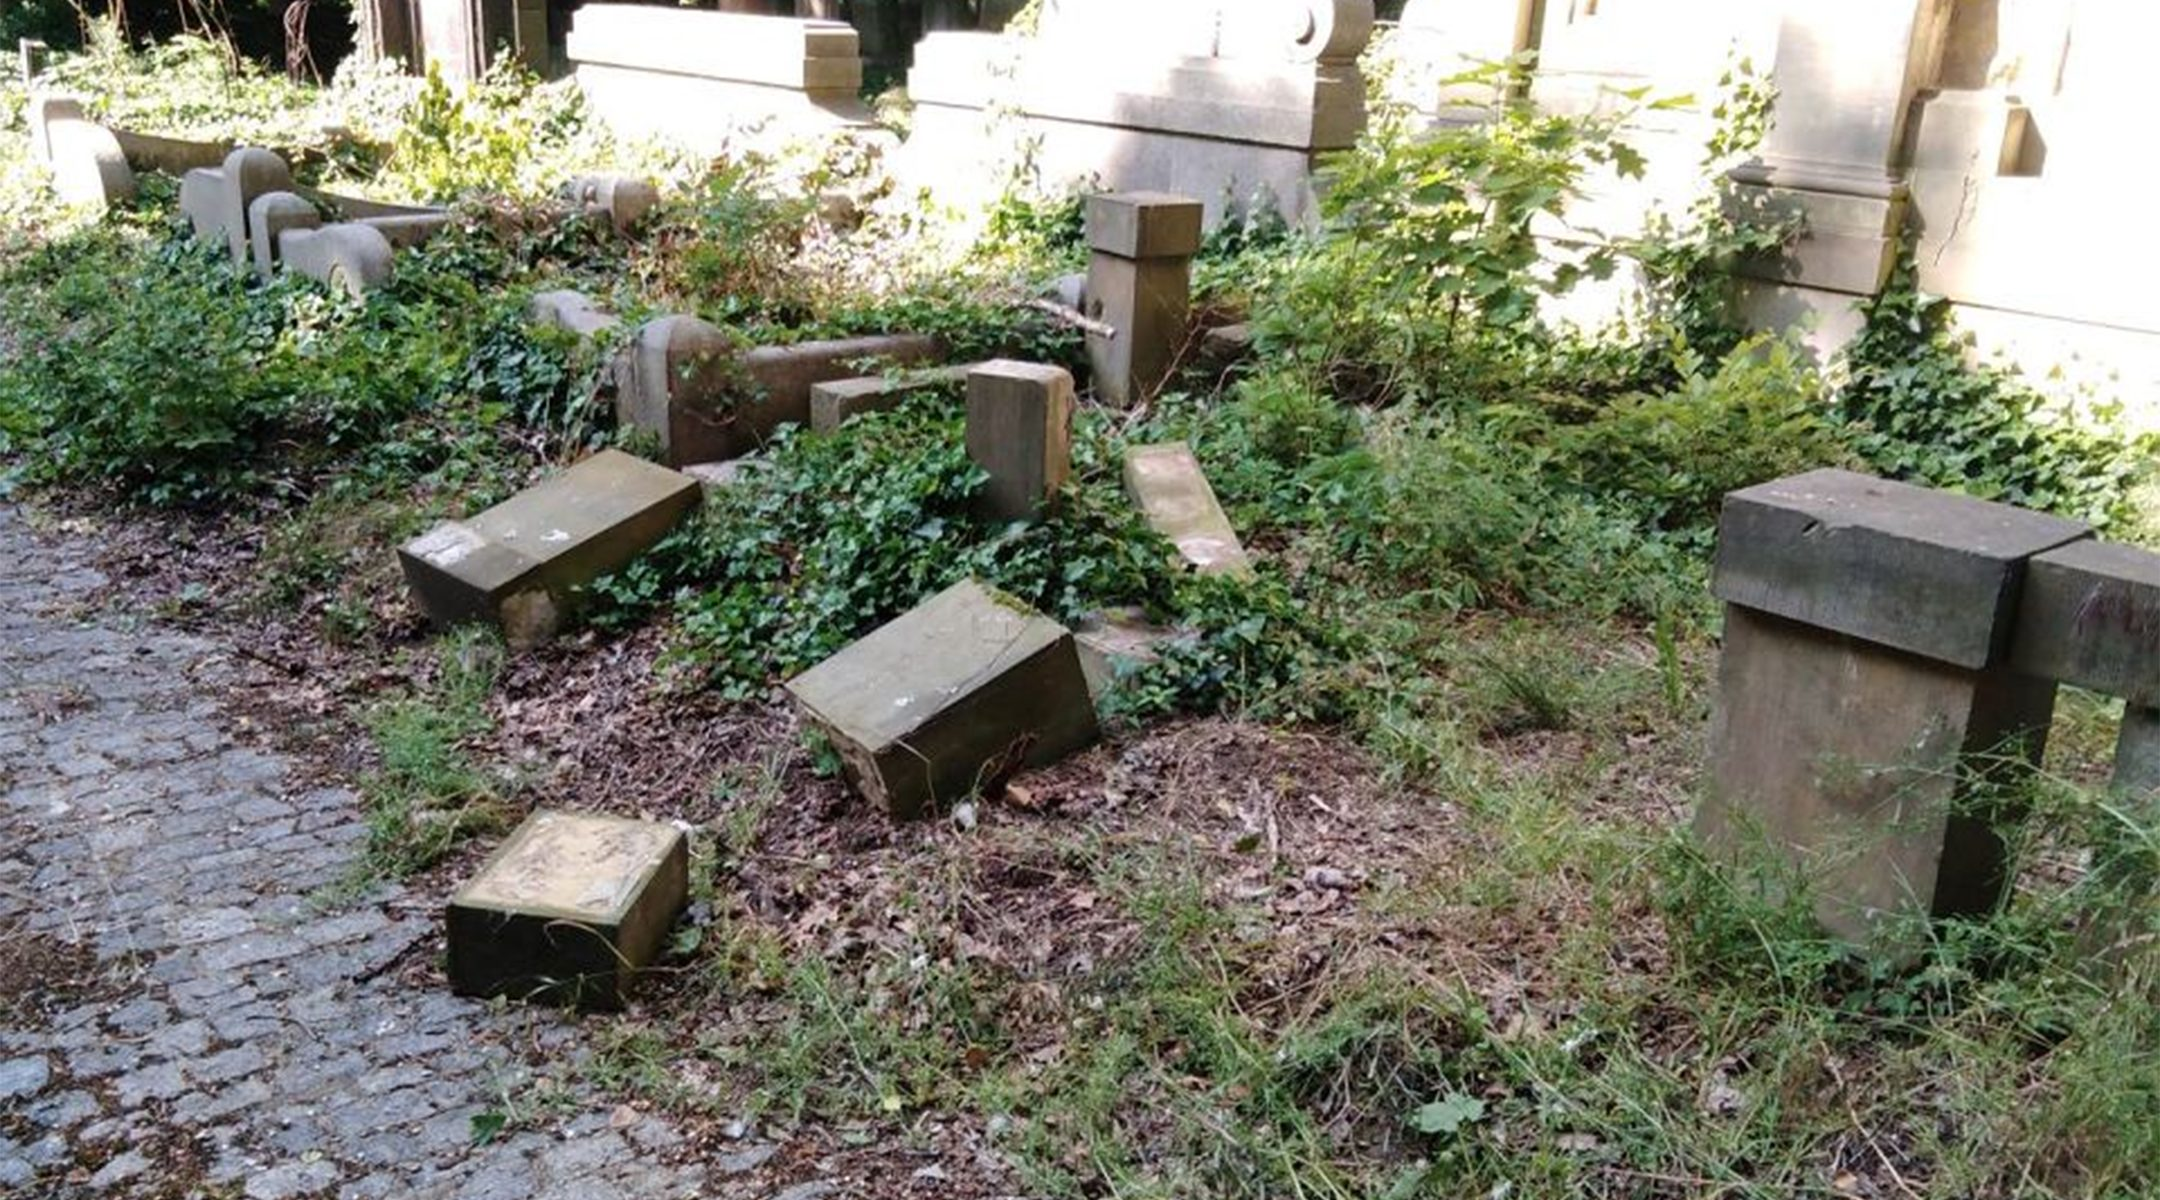 """Hate Starts Young: Polish Children Desecrate Dozens of Jewish Headstones To Build A """"Fortress"""""""